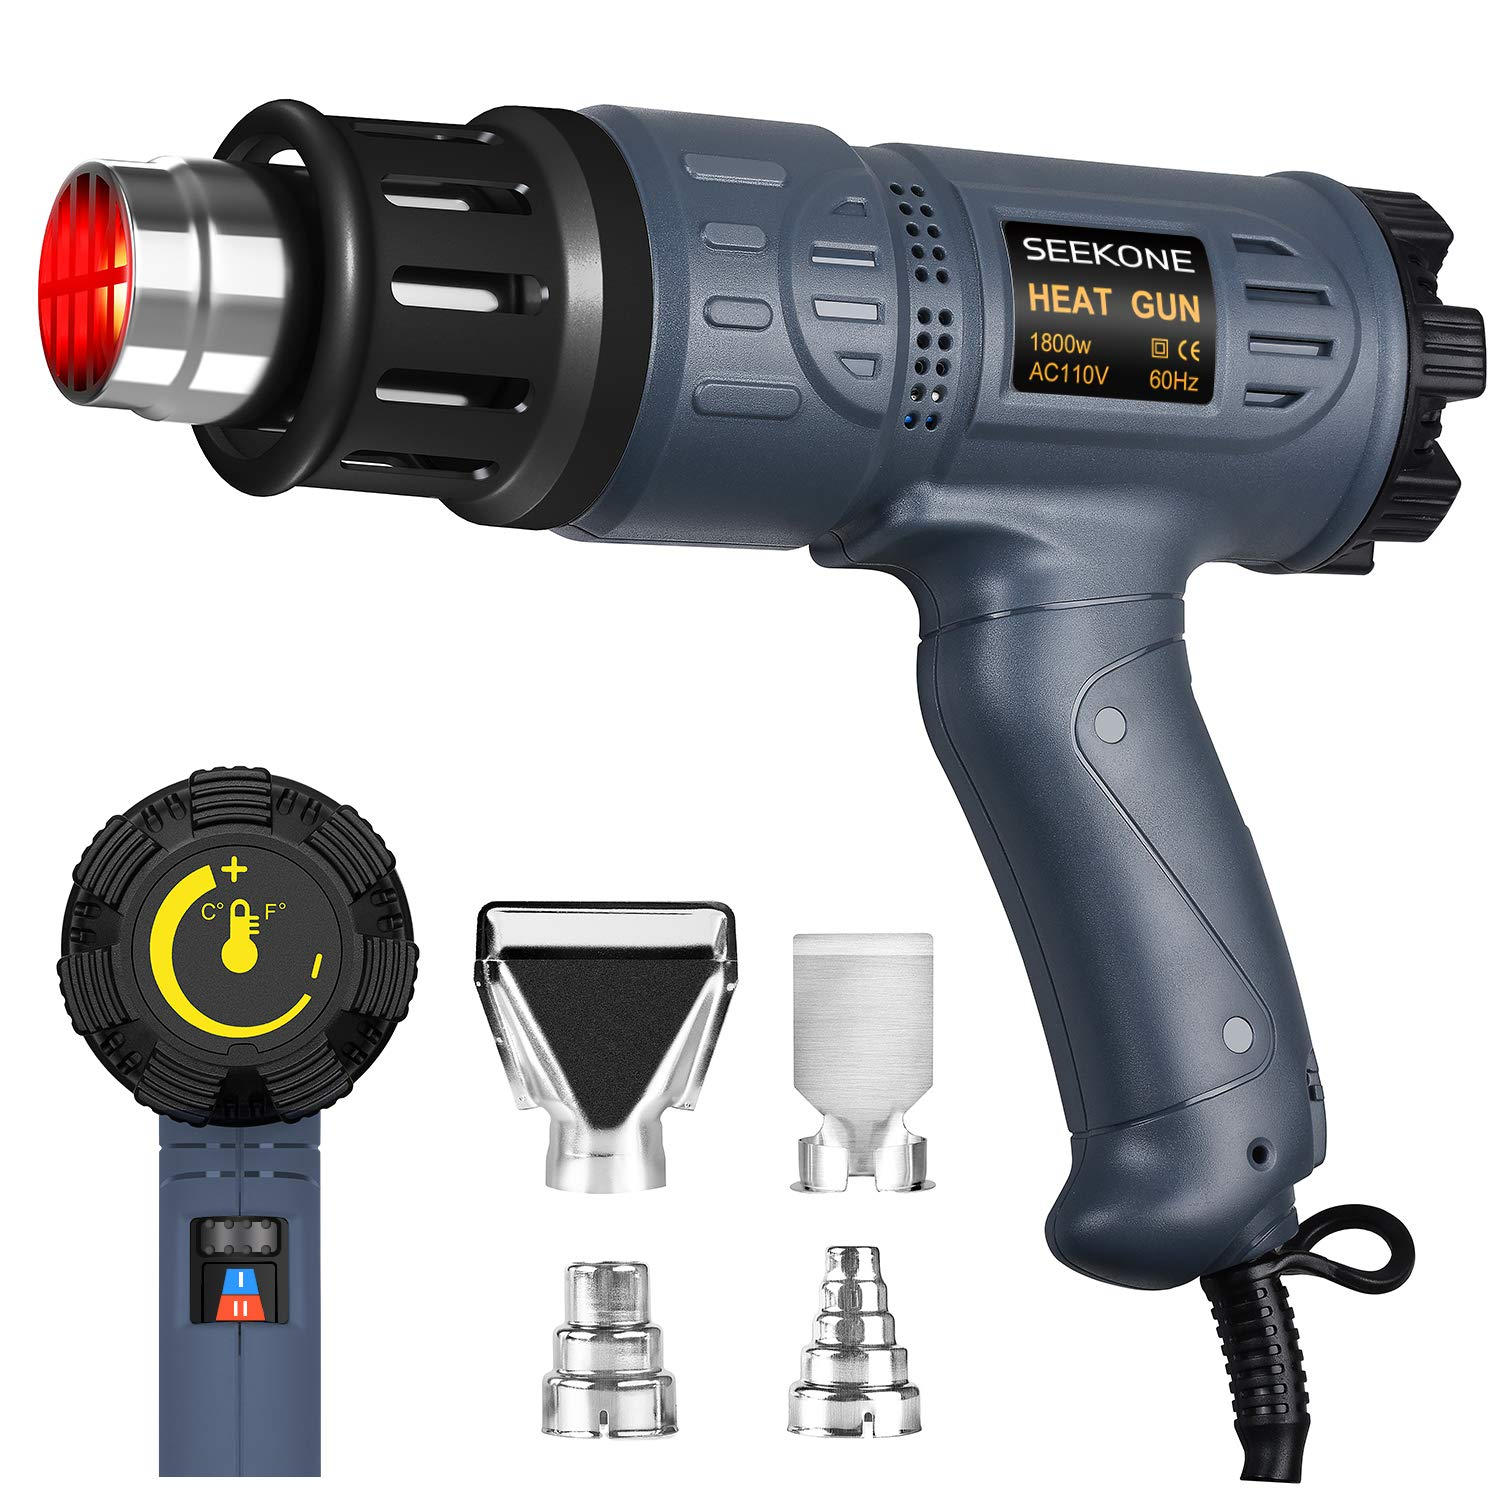 SEEKONE Heat Gun Kit 122℉~1202℉(50℃- 650℃) Variable Temperature Control by Adjustable Dial with Two Temp-settings, Four Nozzles for Shrink Wrapping, Crafts, Electronics, Removing Paint, Bending Pipes